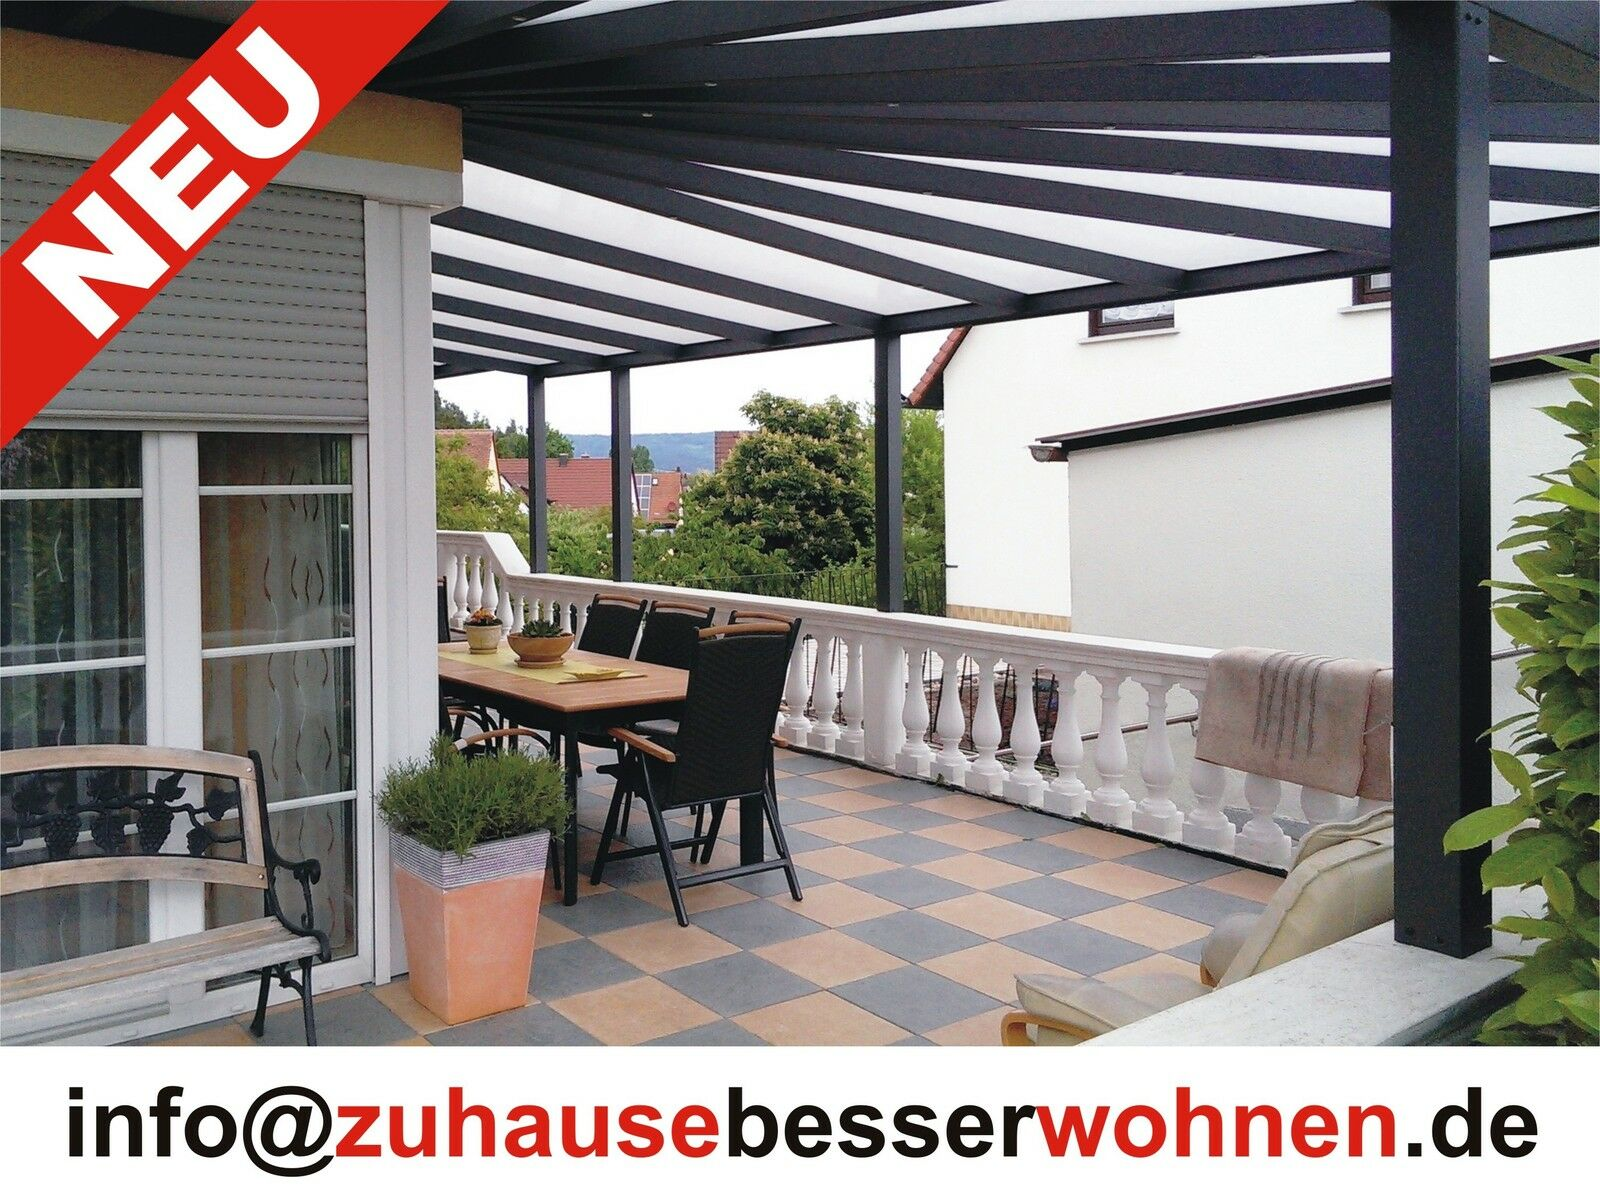 terrassen berdachung carport aluminium terrassendach anthrazit vsg glas 6x3 5 eur. Black Bedroom Furniture Sets. Home Design Ideas